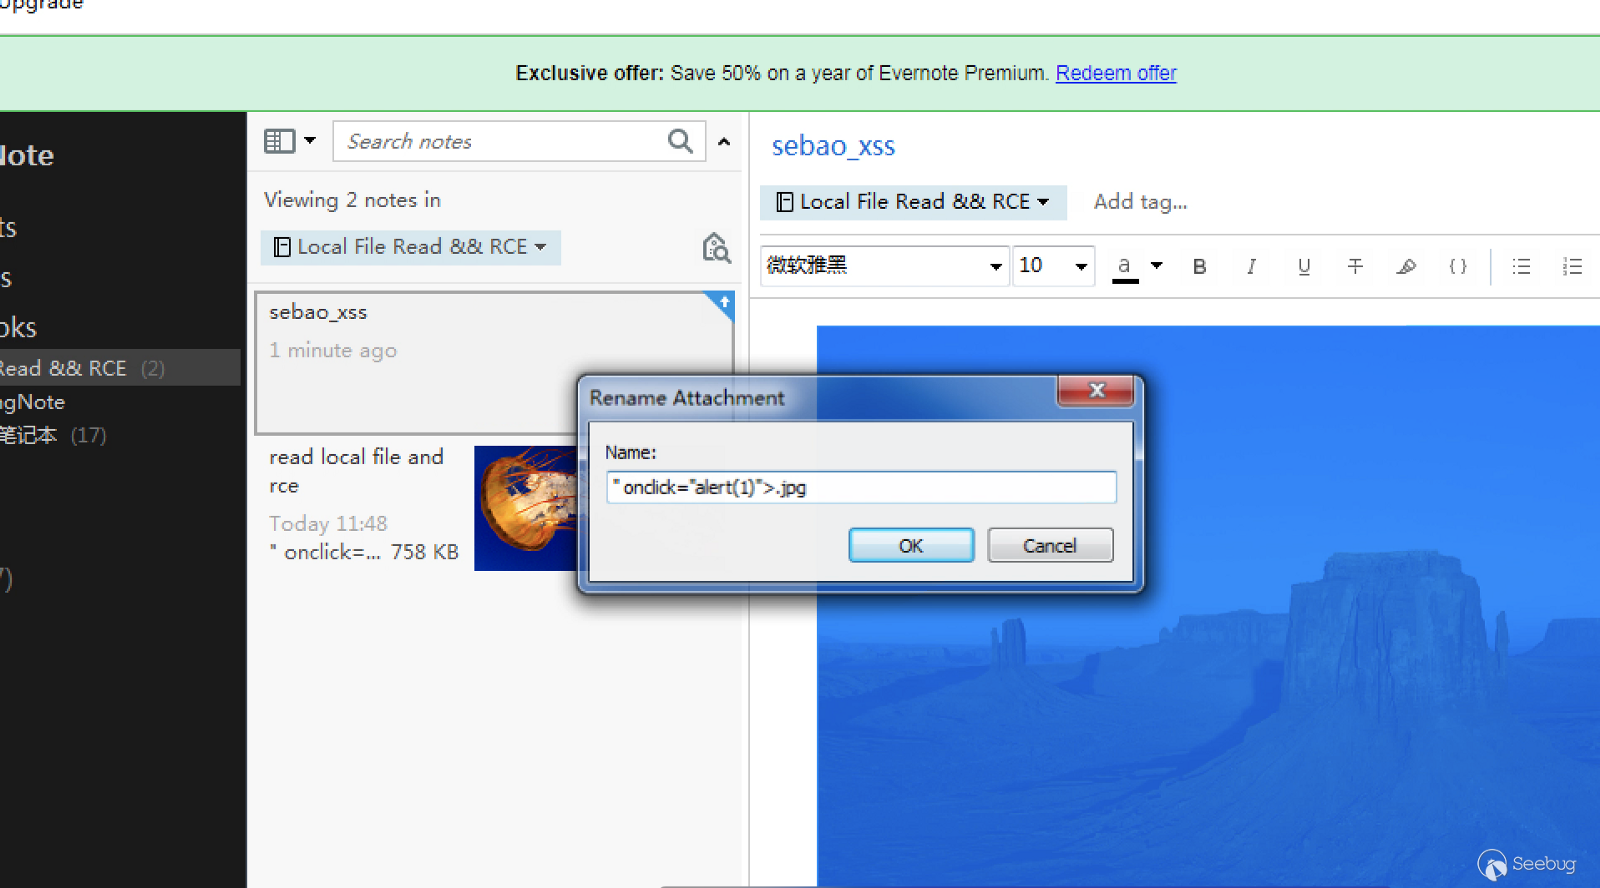 Evernote For Windows Read Local File and Command Execute Vulnerabilities